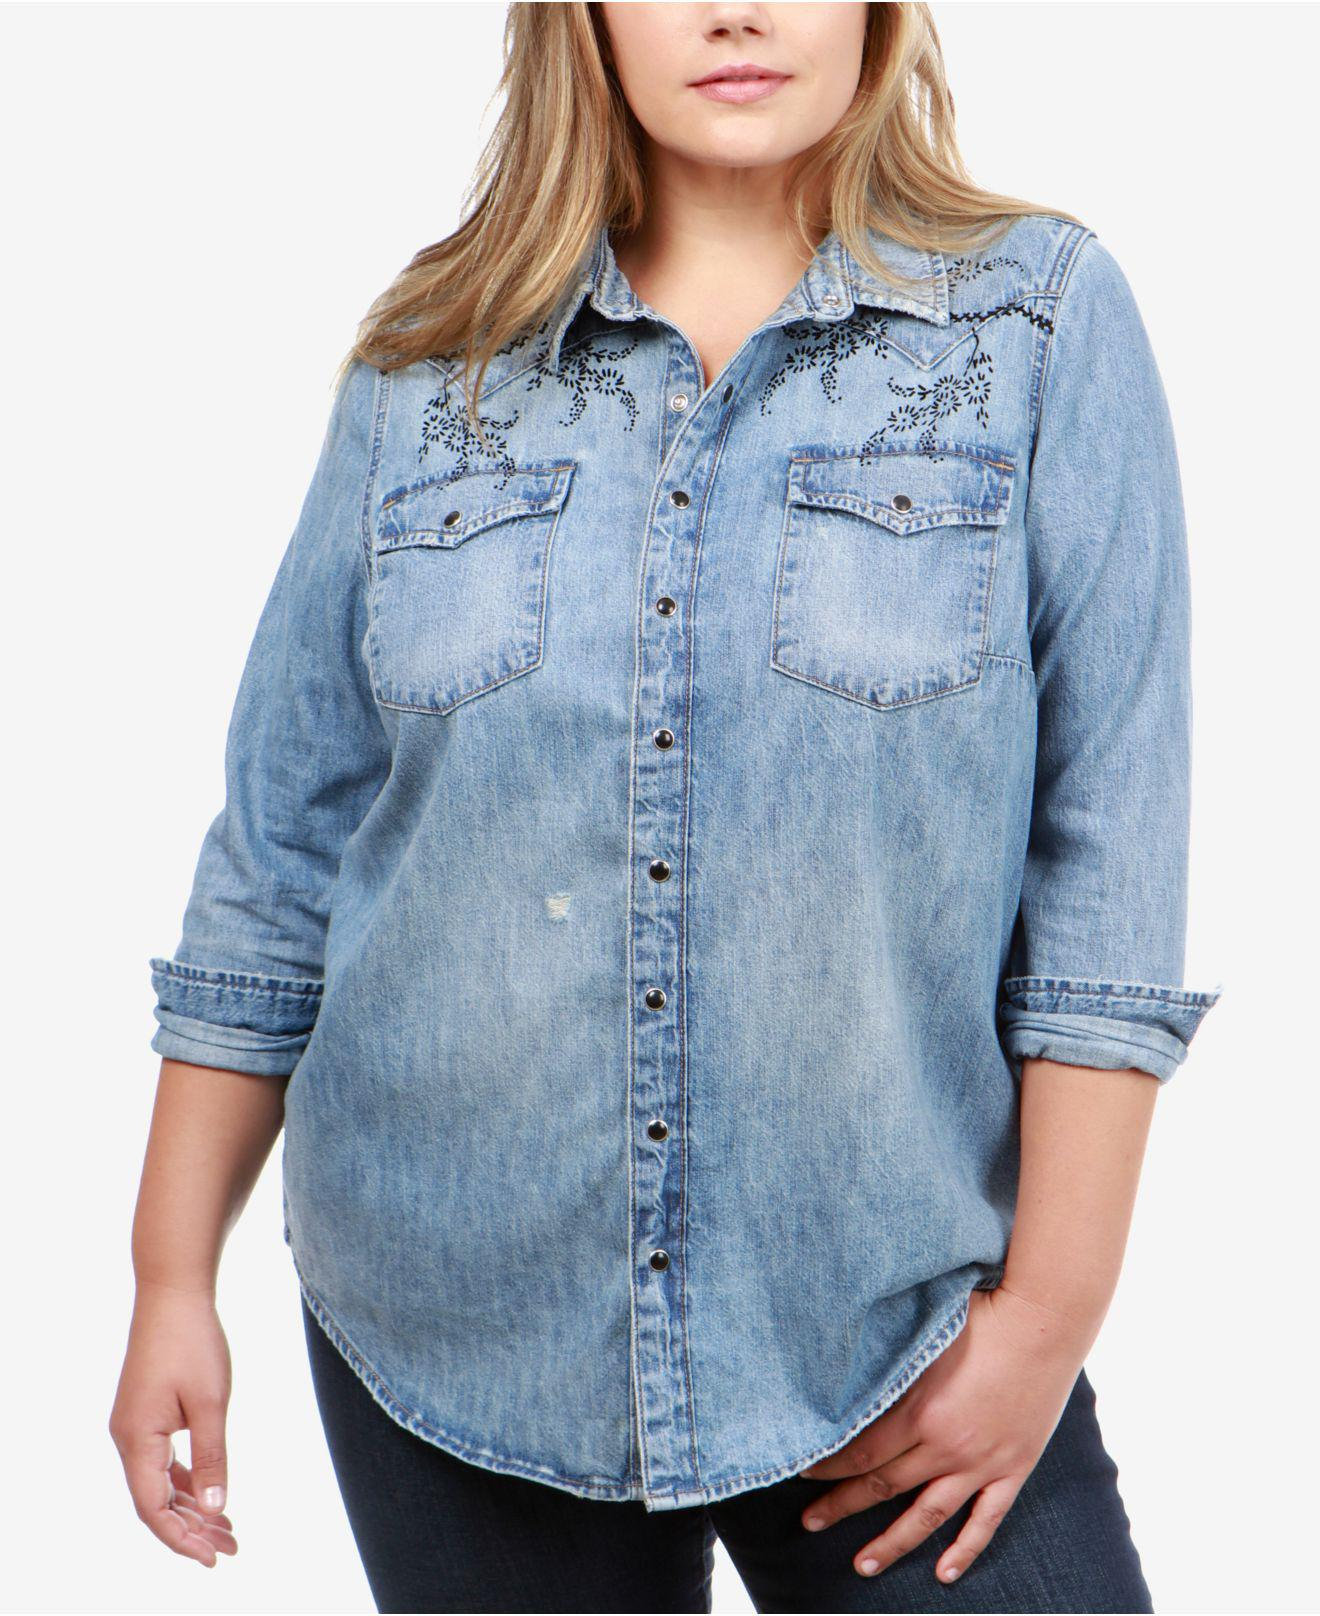 5792391e0aaec Lyst - Lucky Brand Trendy Plus Size Cotton Western Shirt in Blue